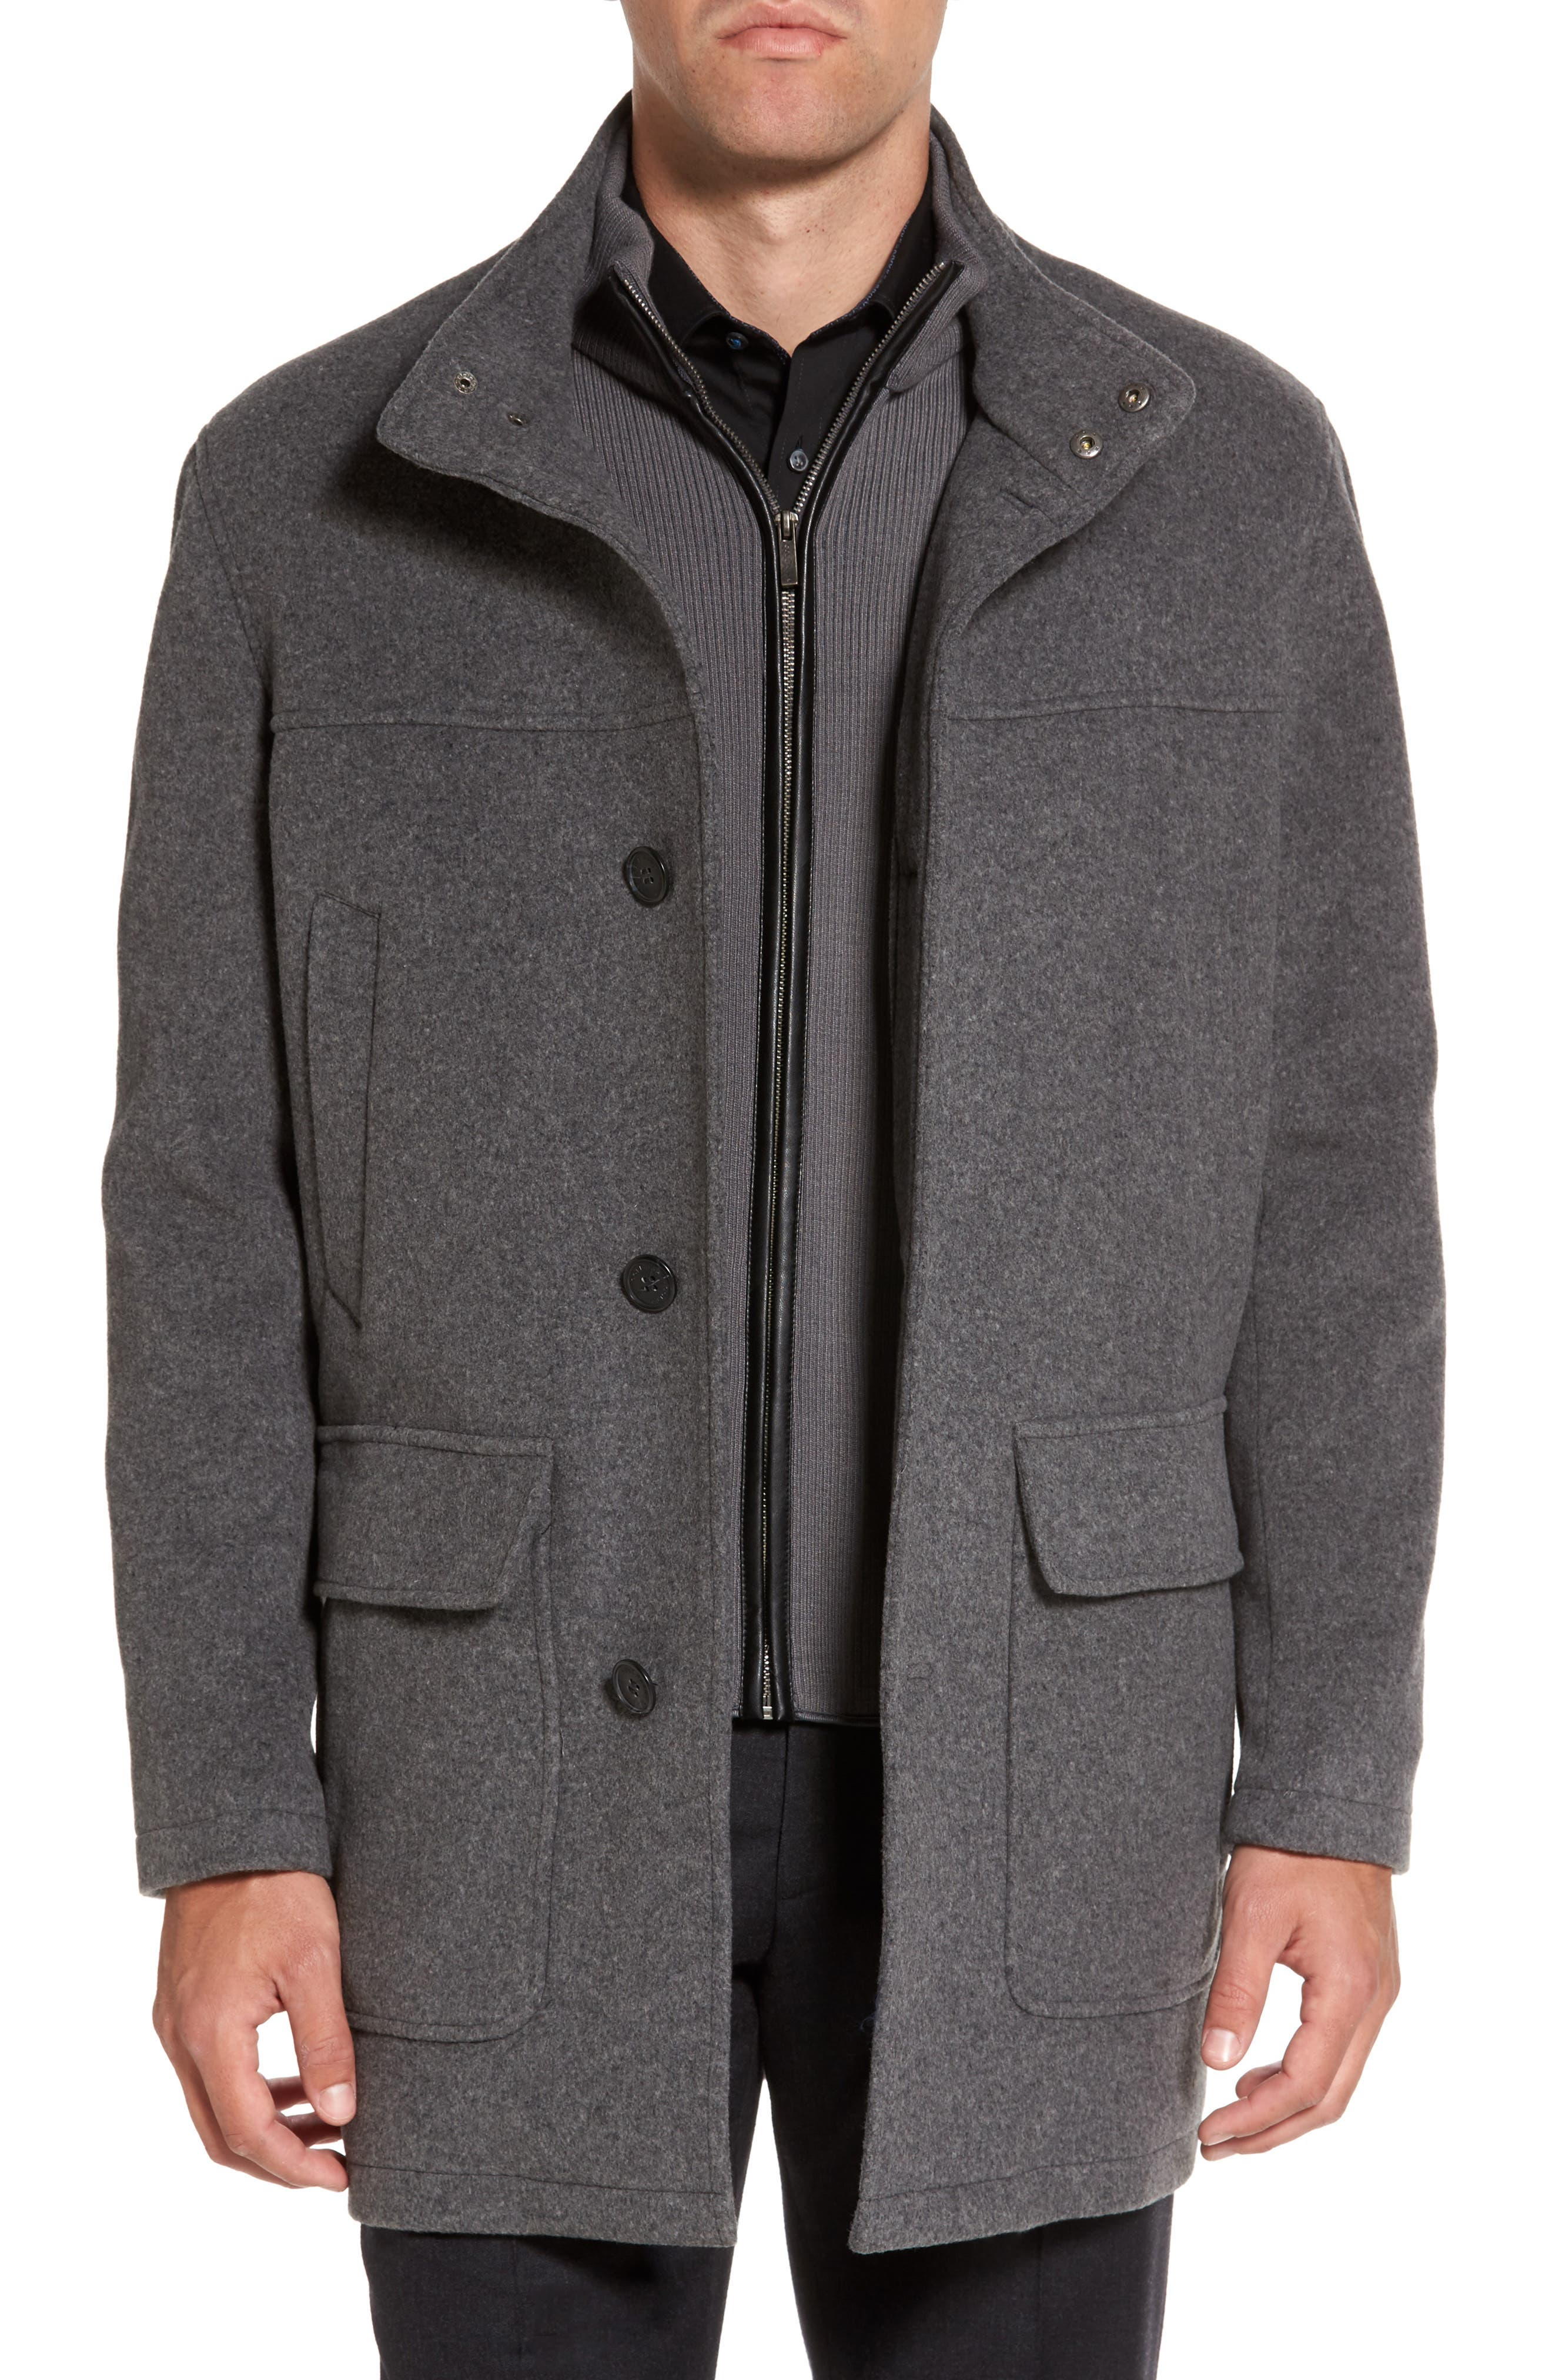 Wool Blend Topcoat with Inset Bib,                             Alternate thumbnail 3, color,                             Light Grey